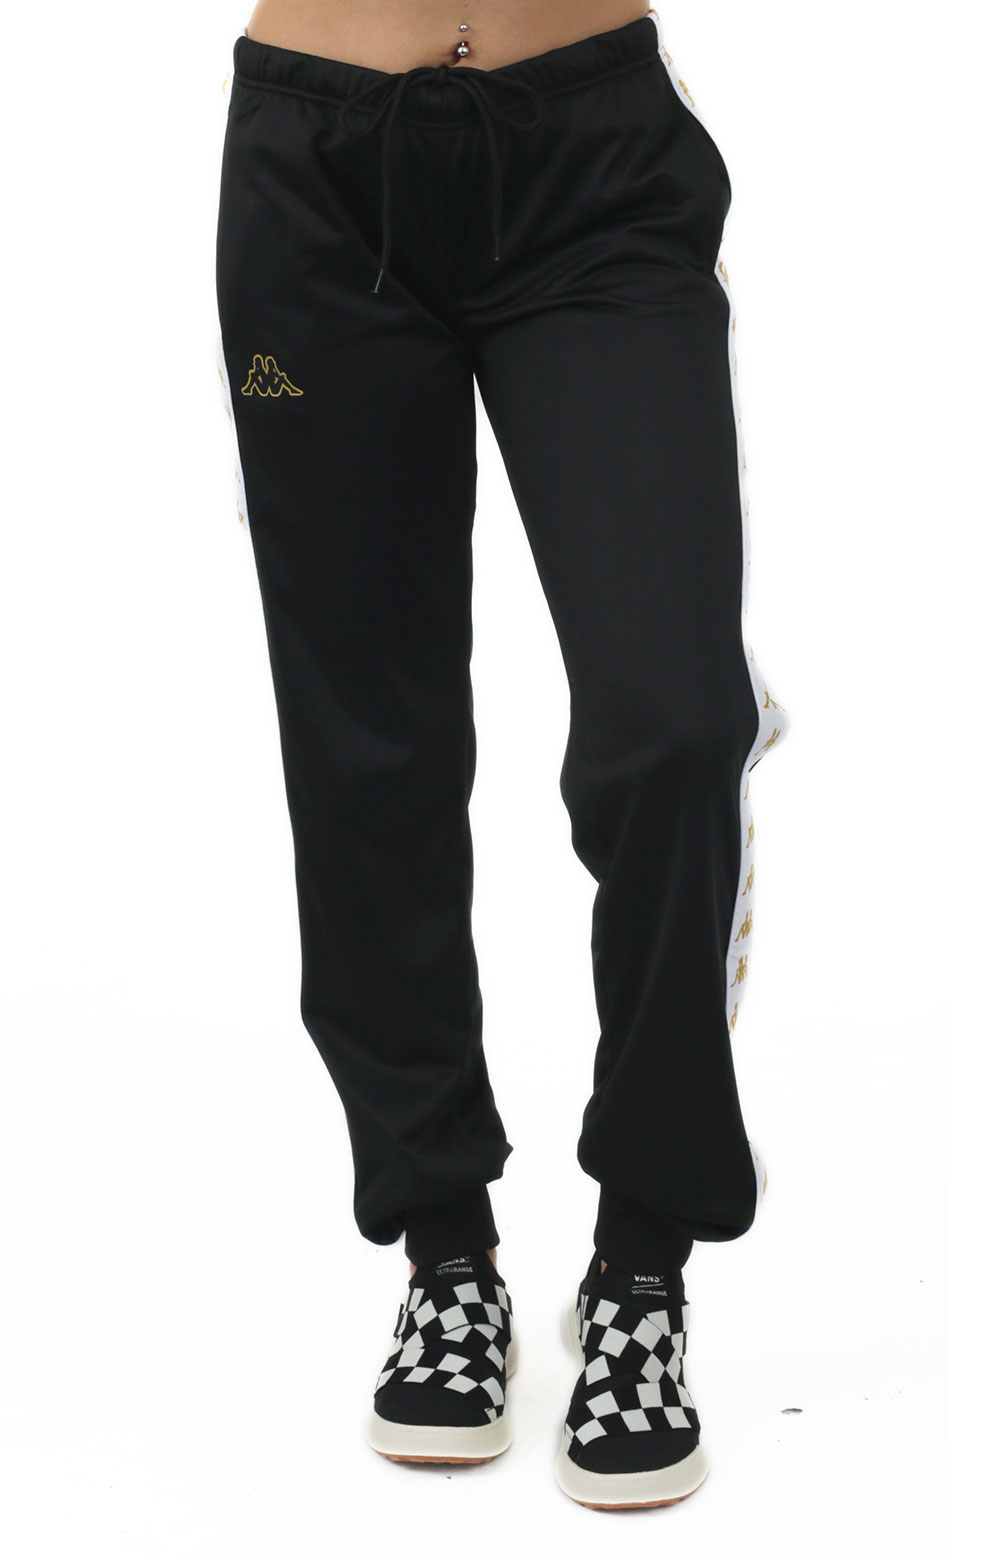 222 Banda Wrastoria Slim Track Pants - Black/White/Gold